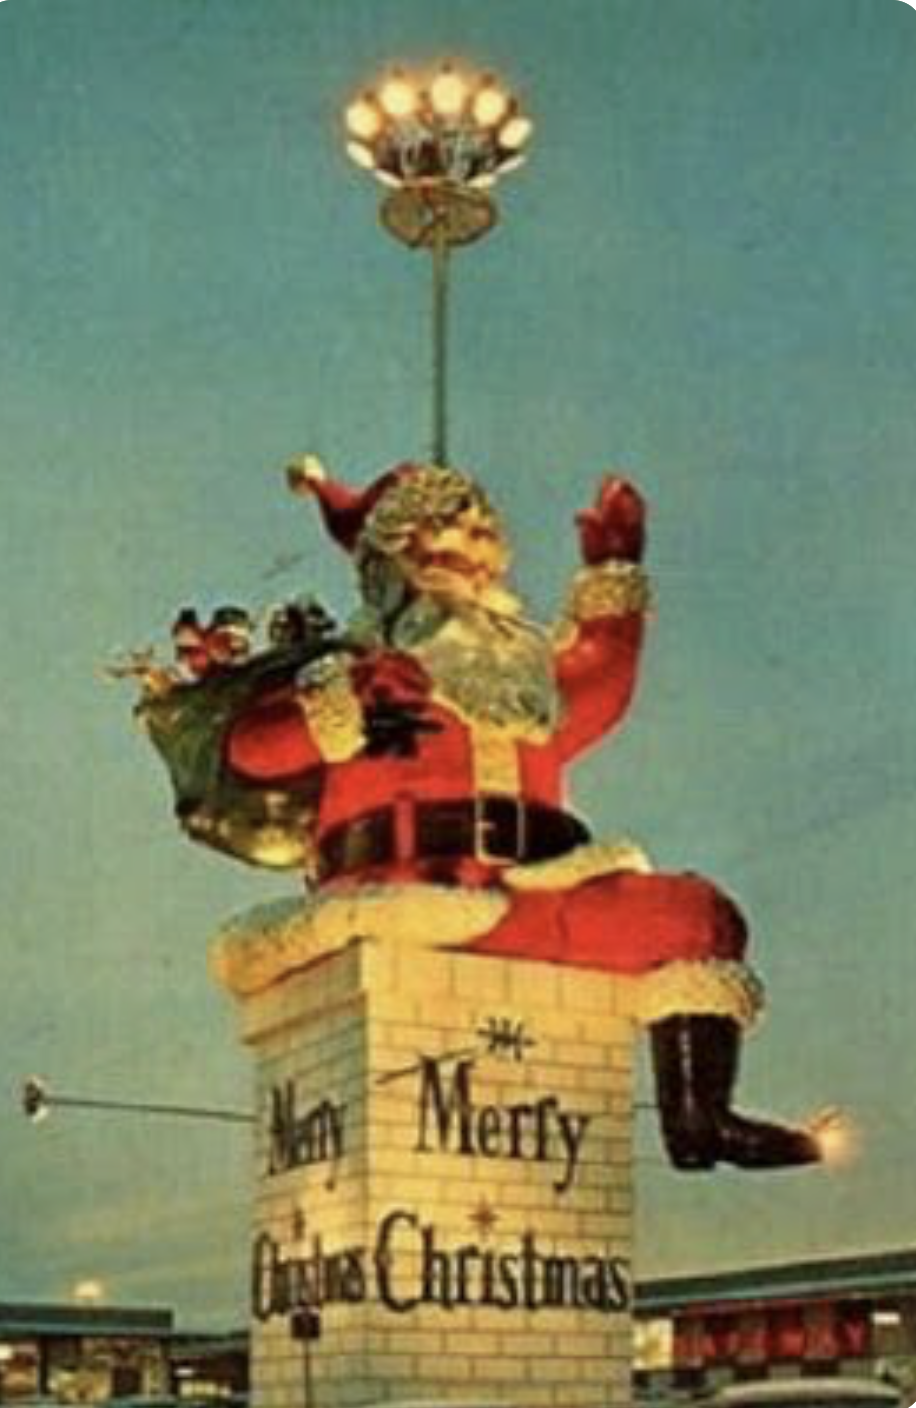 Pin by Wolfgang Wolfenstein on Favorite Holidays Vintage